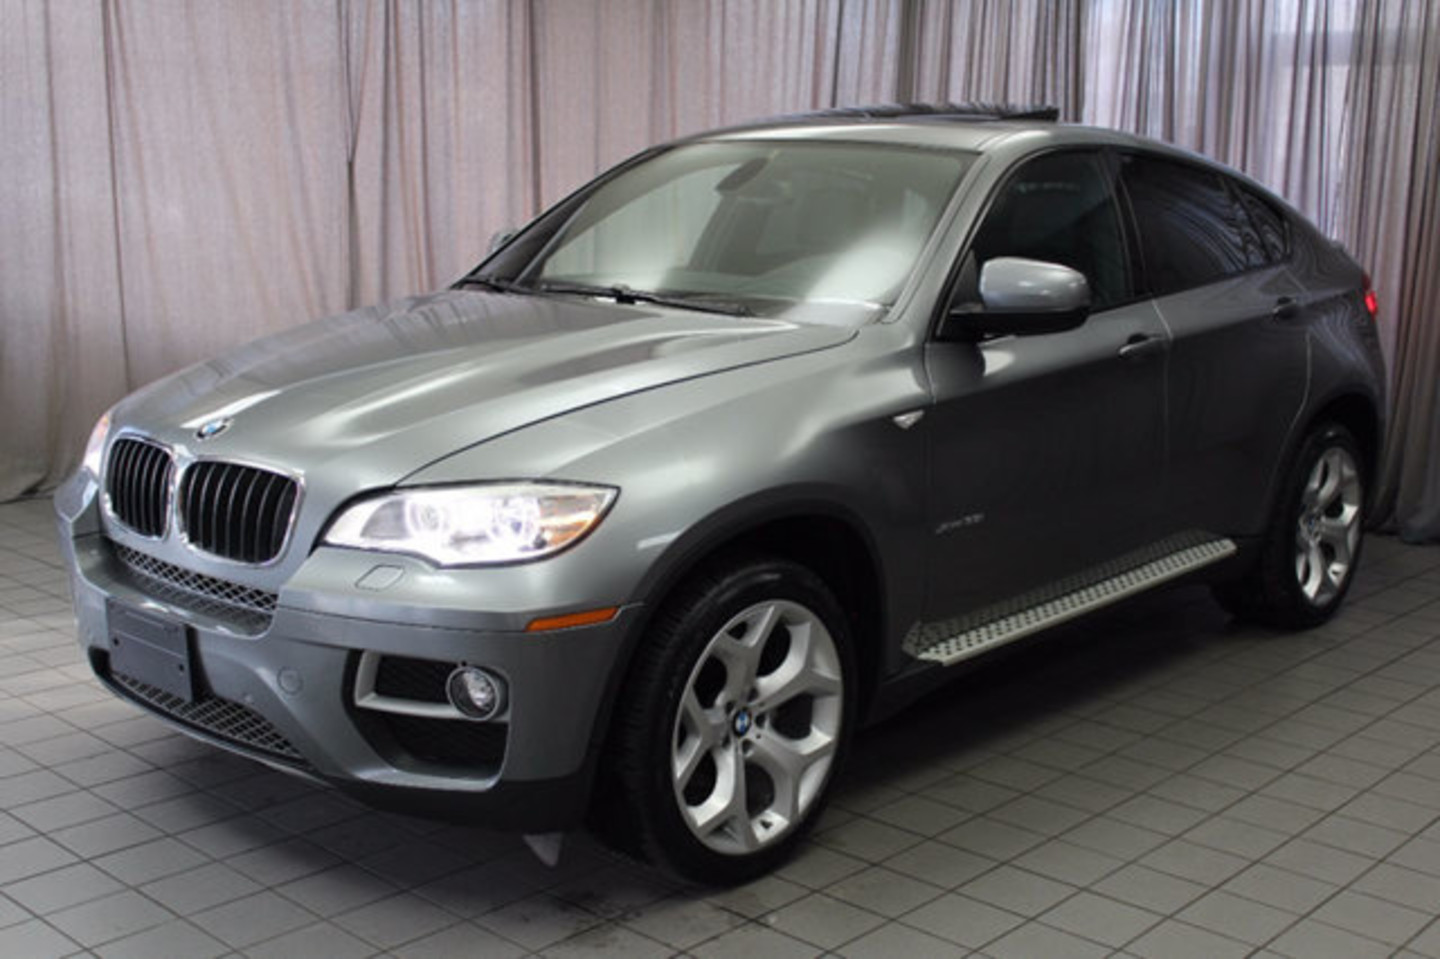 2013 Bmw X6 Xdrive 35i Xdrive35i City Oh North Coast Auto